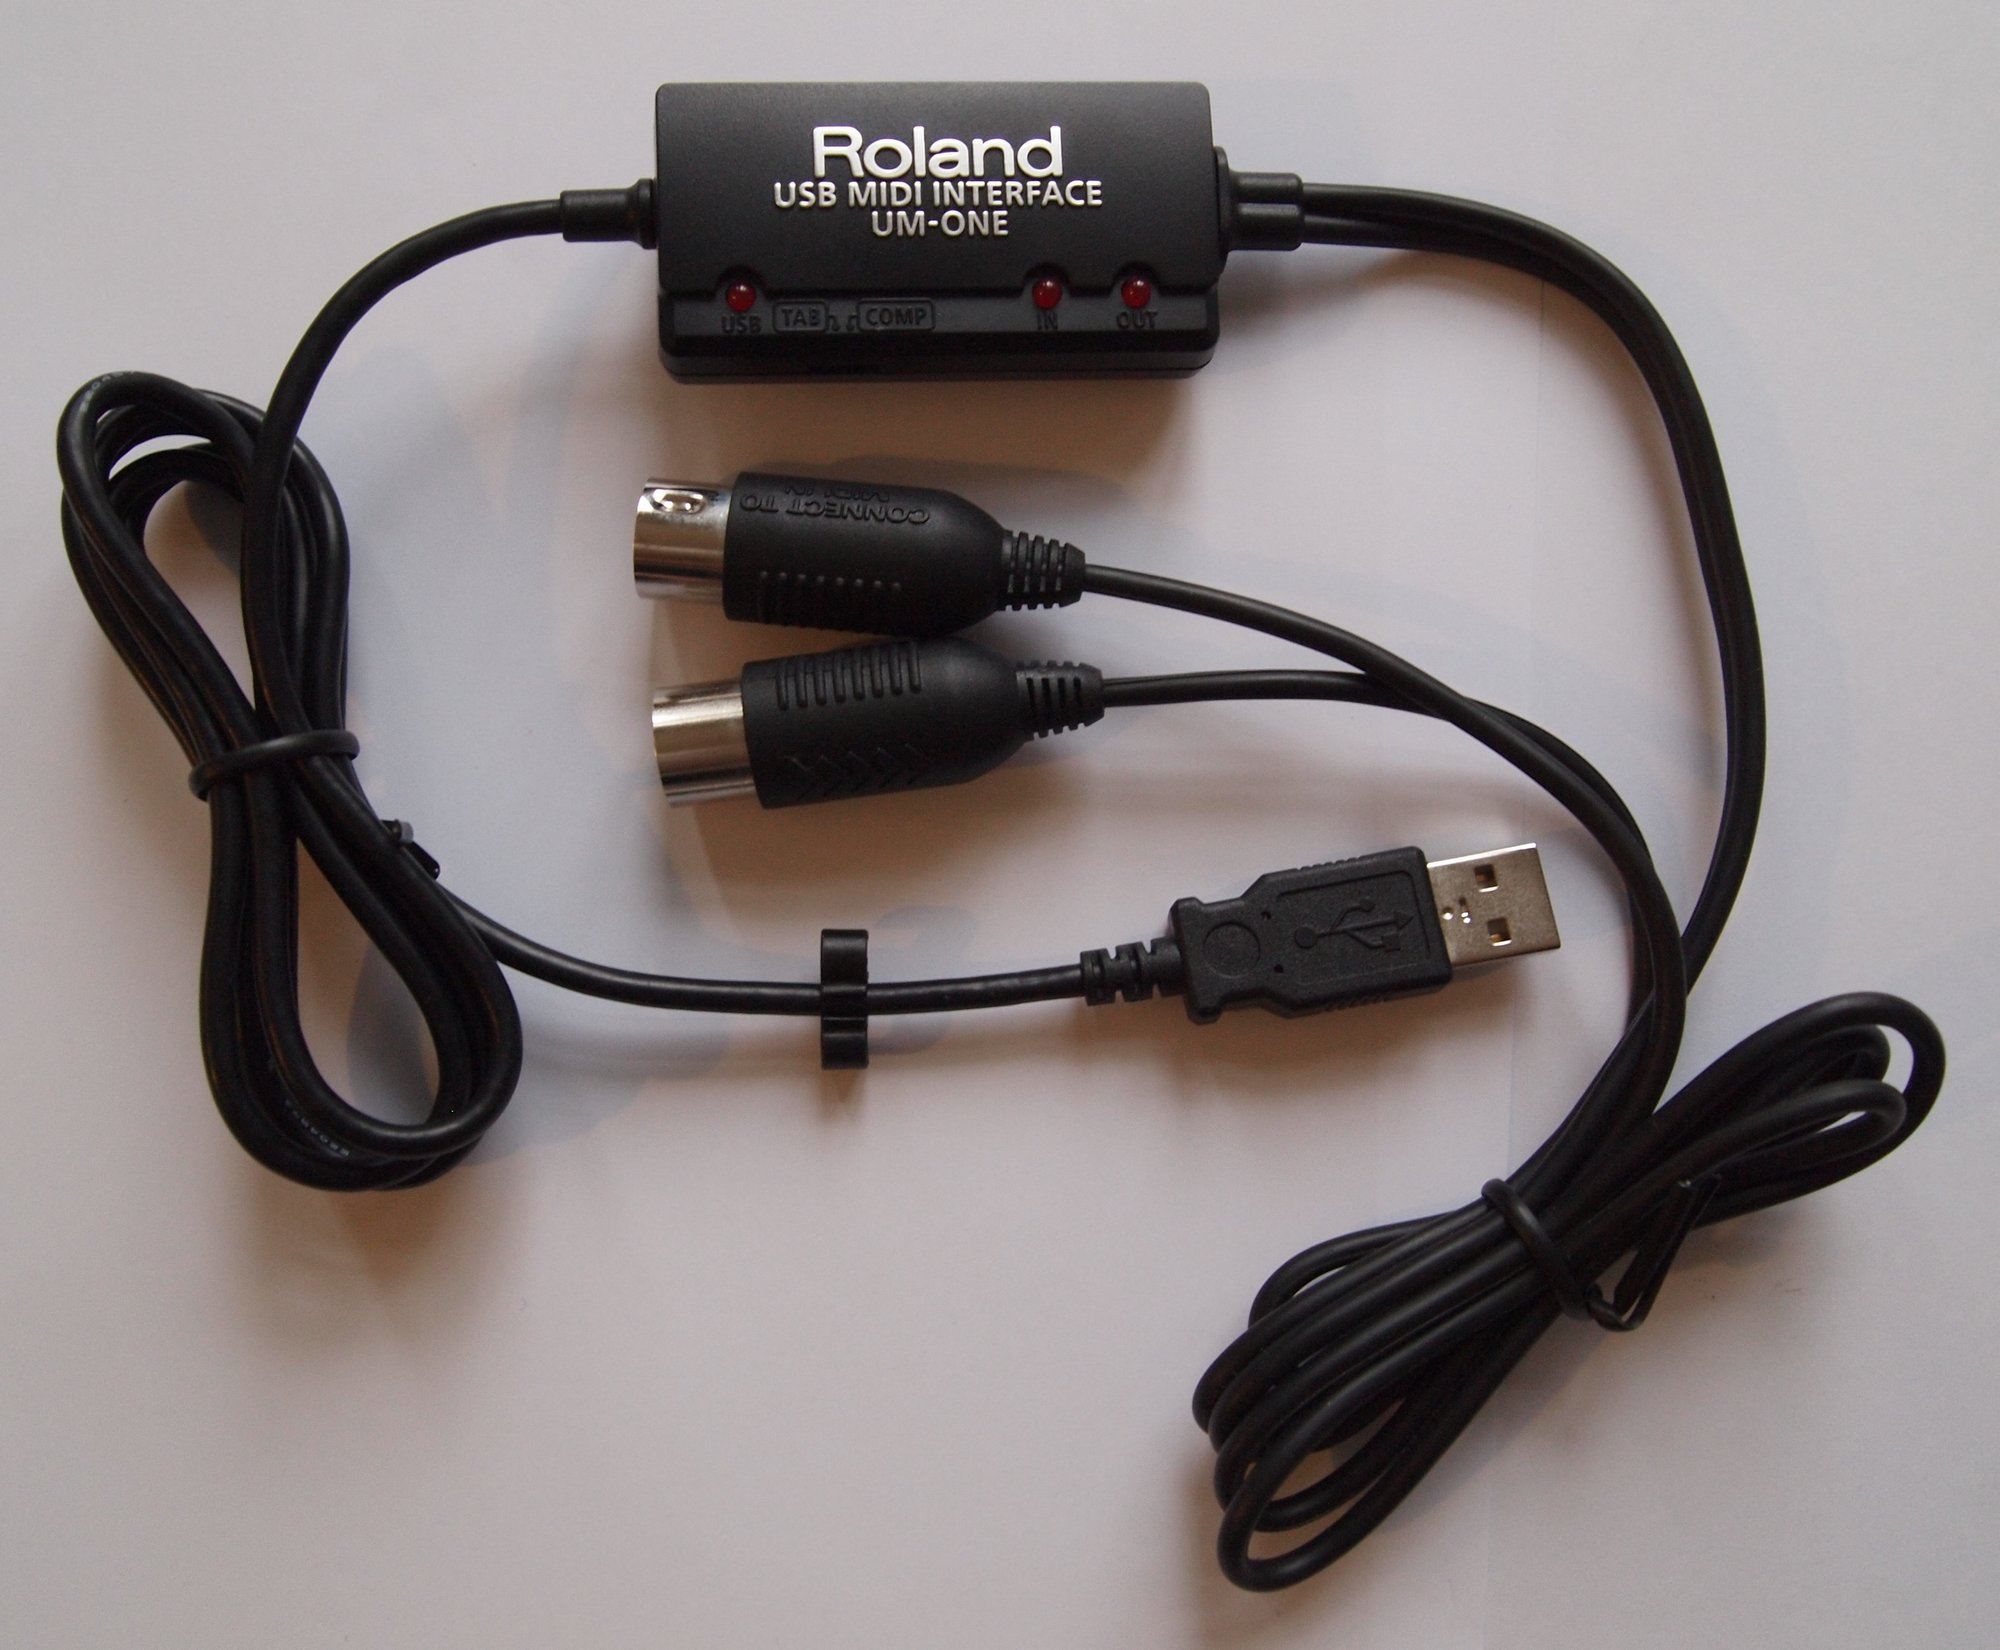 Roland UM-1 USB-MIDI Interface